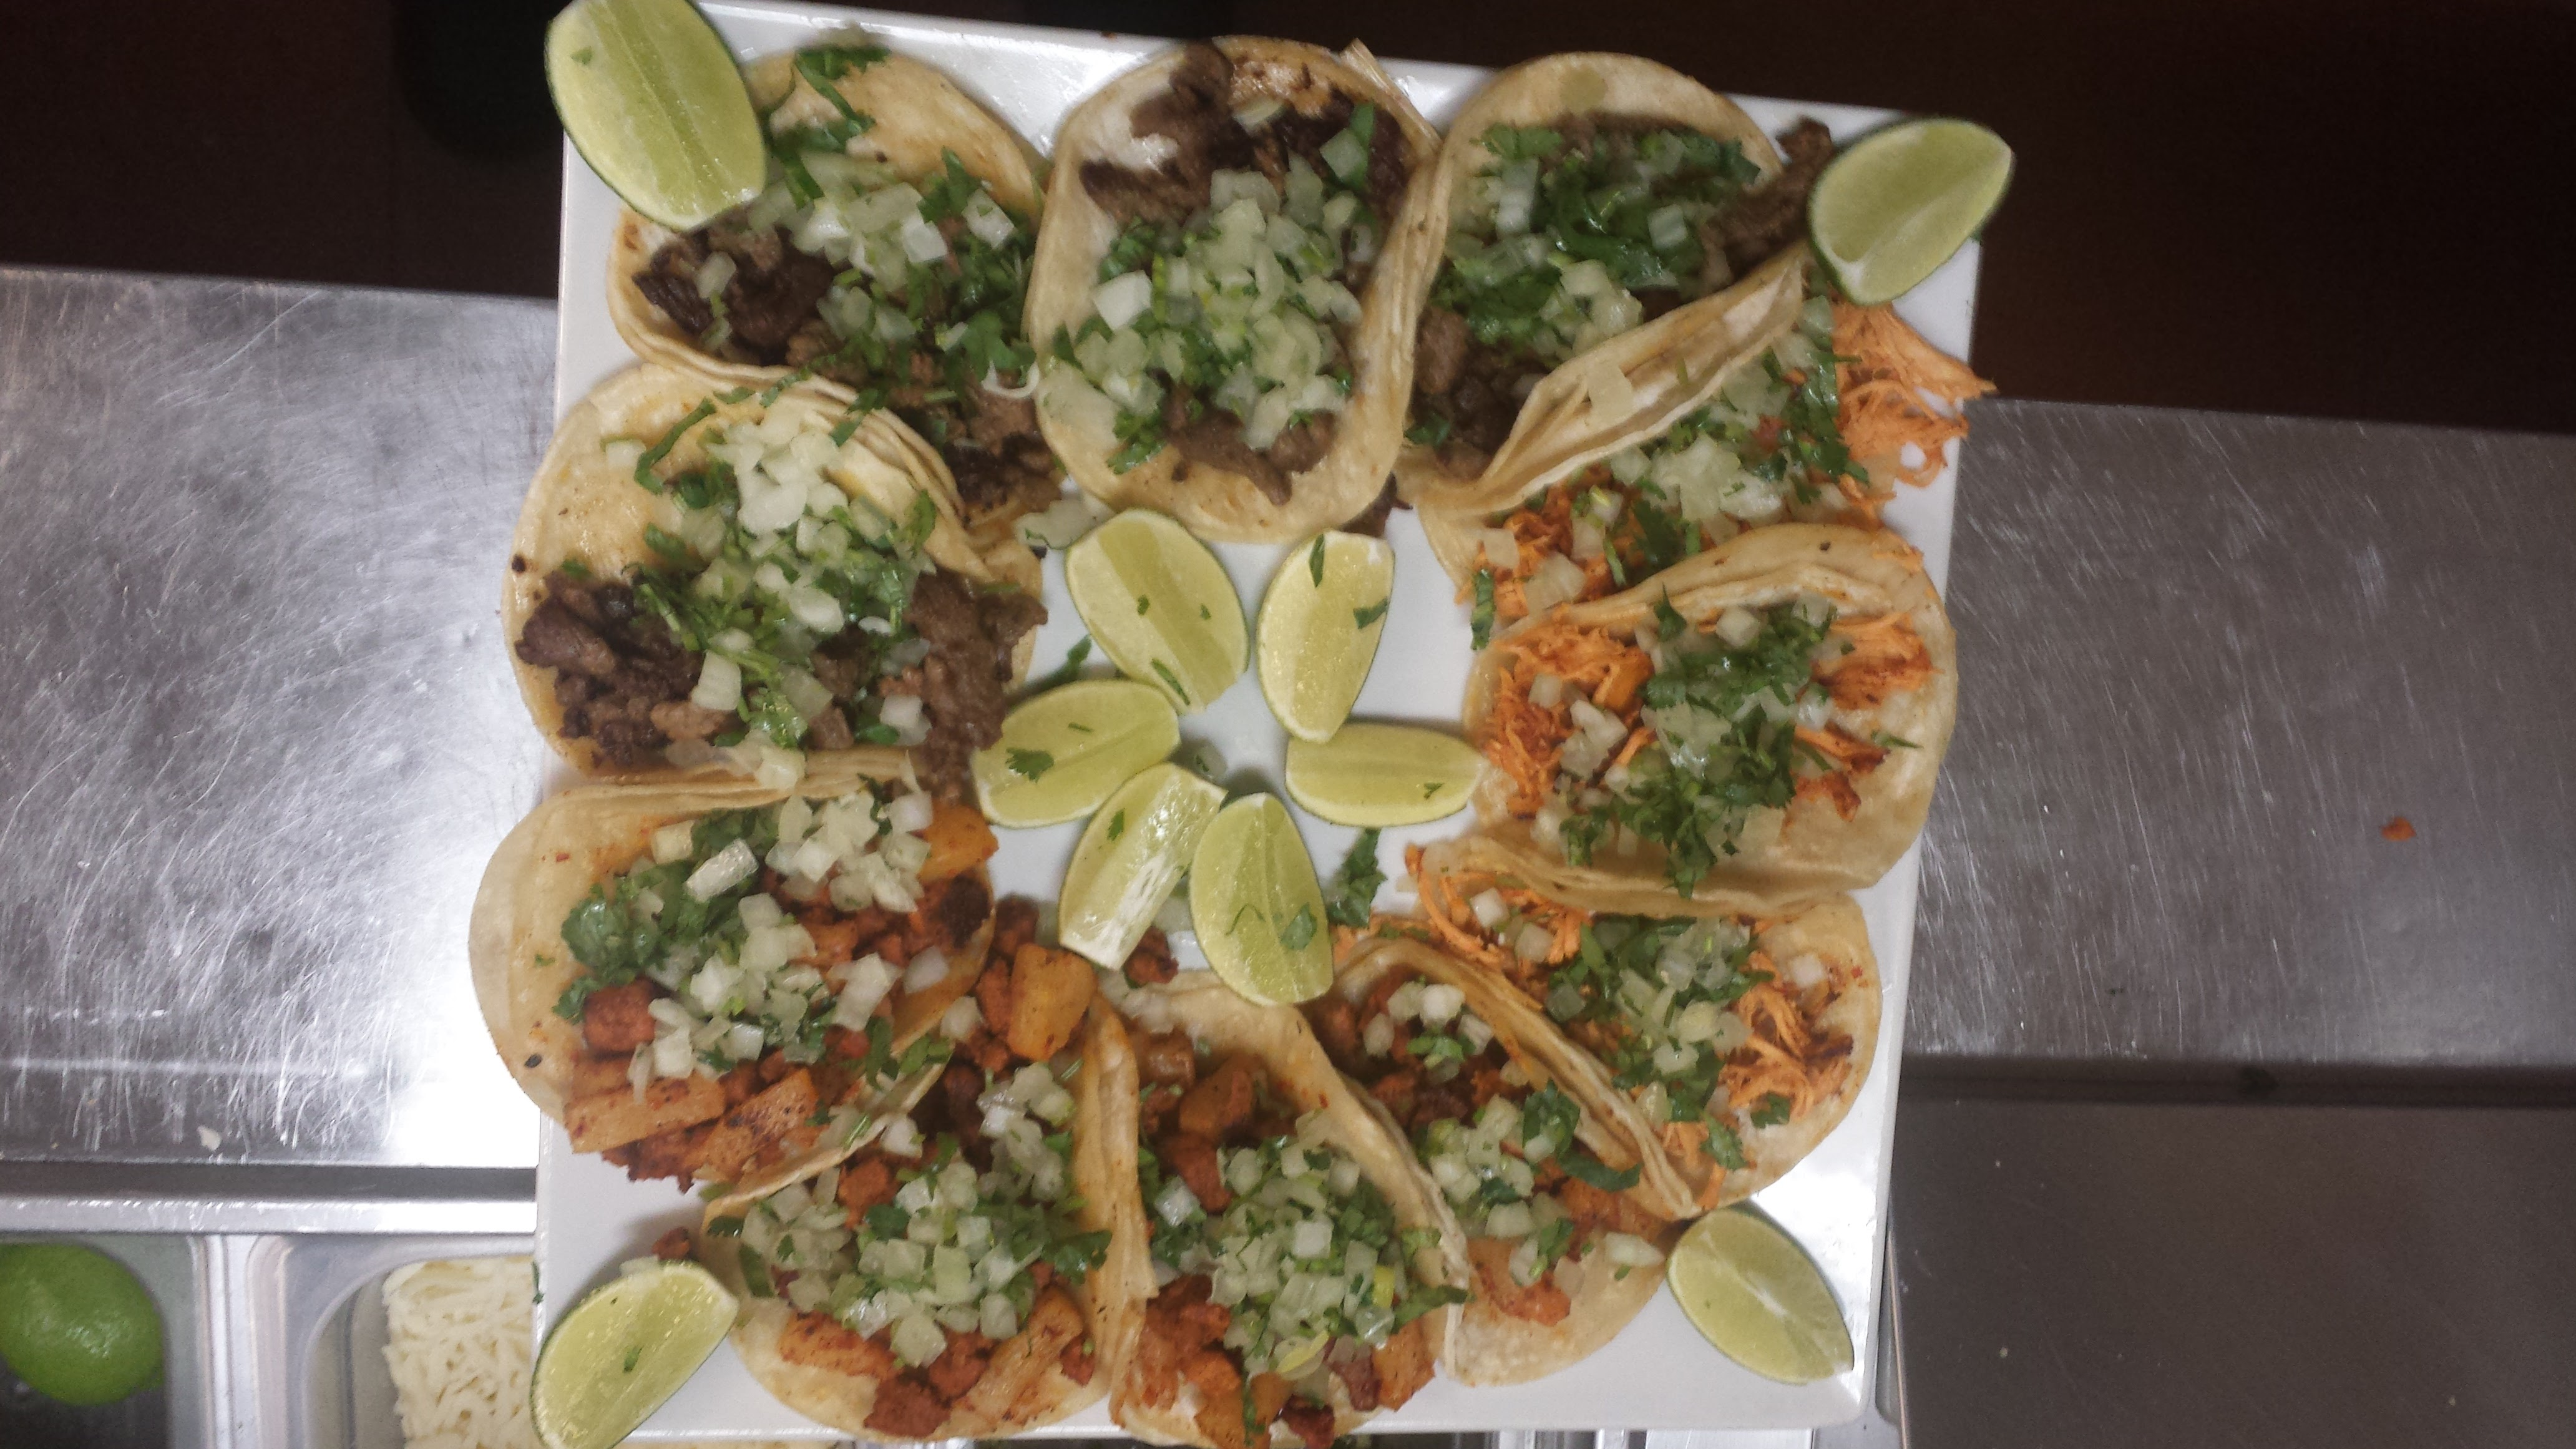 Chicken and Steak Tacos at Brodys Mexican Restaurant